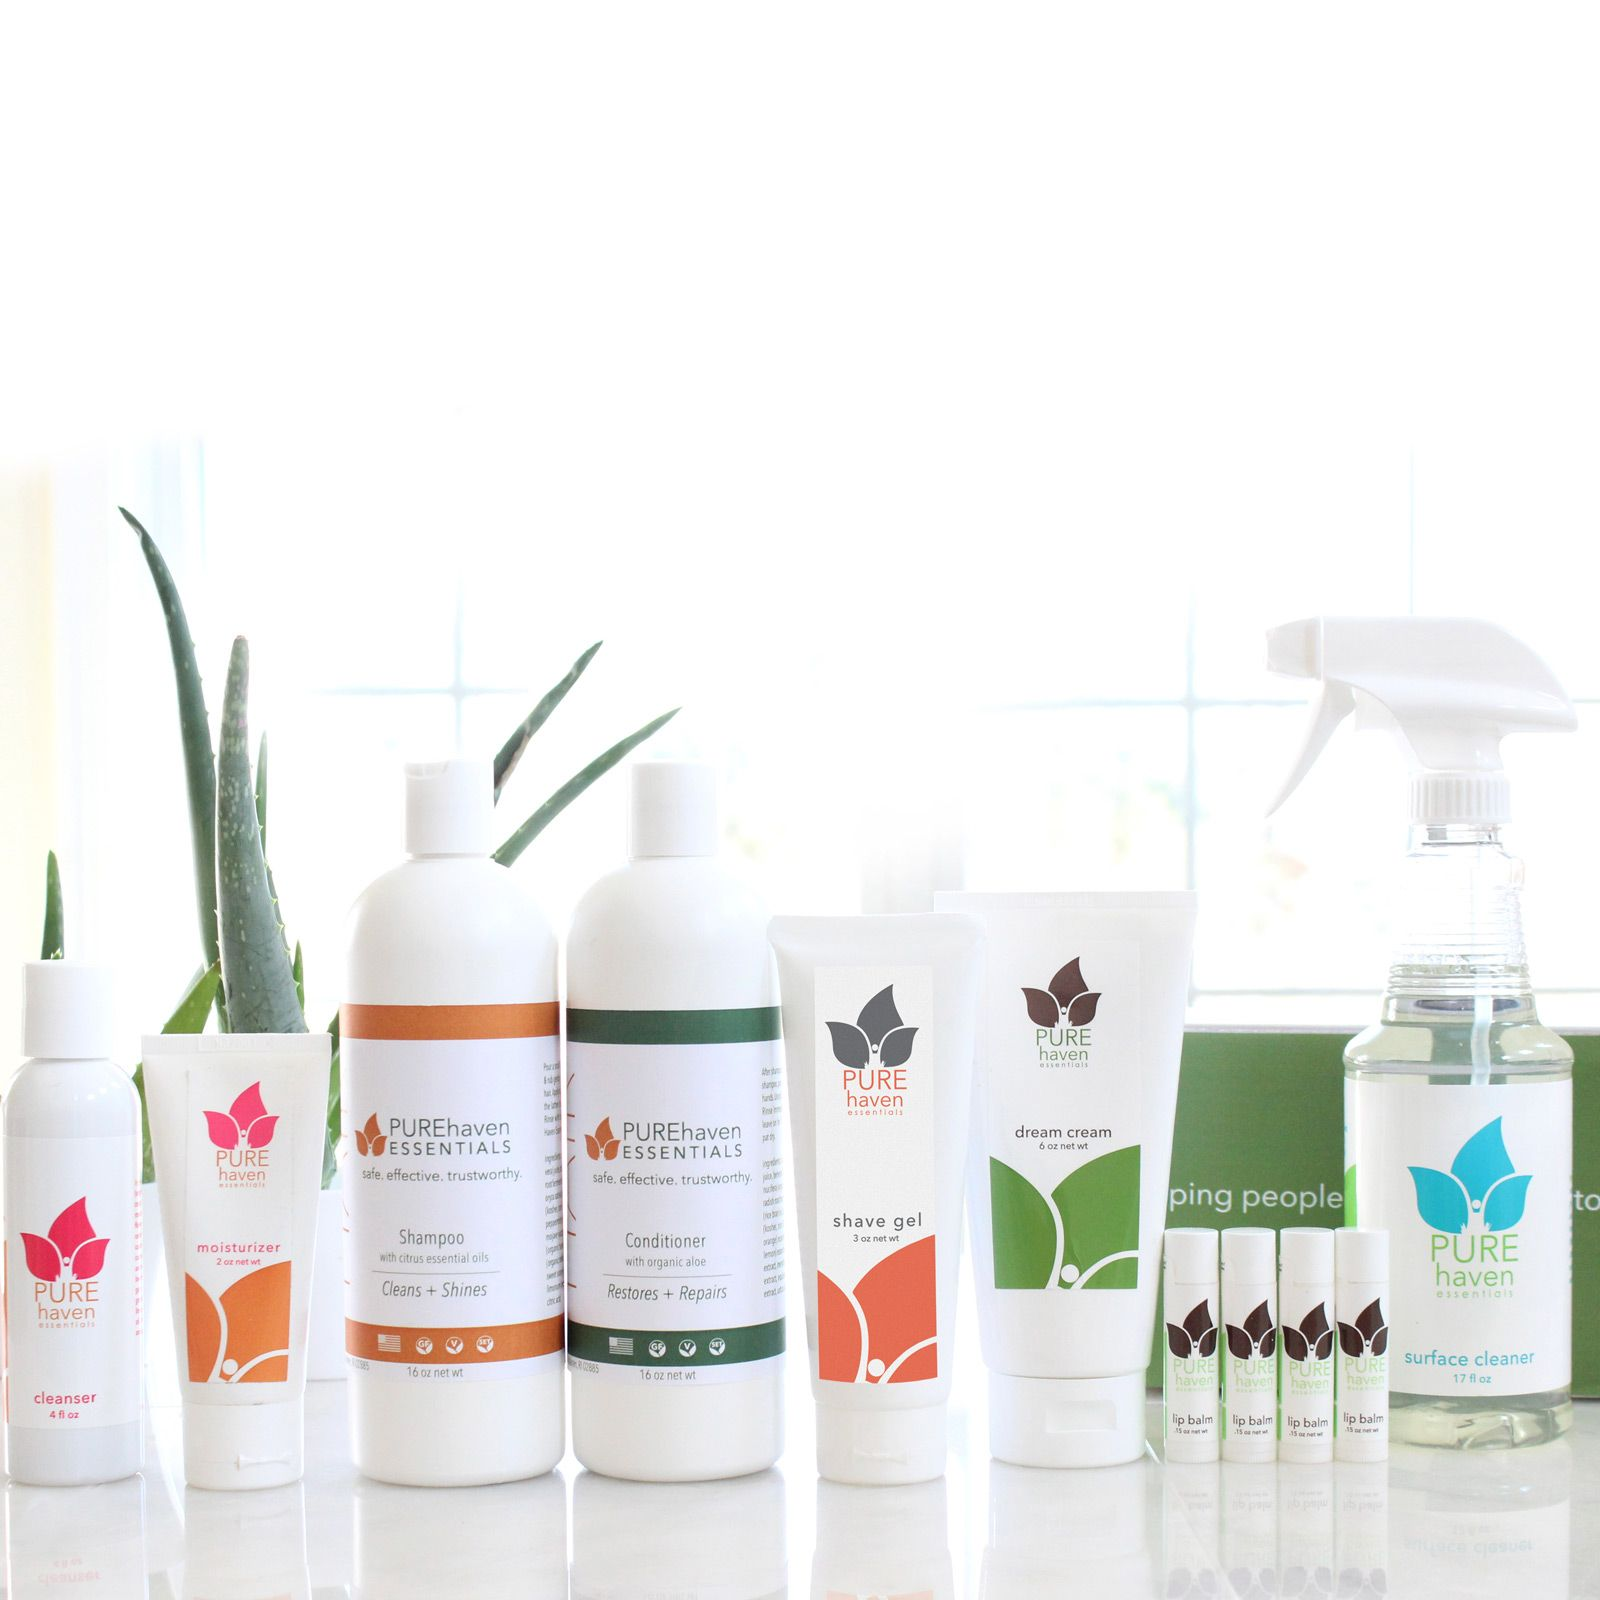 Unsure where to start your nontoxic journey? PUREhaven